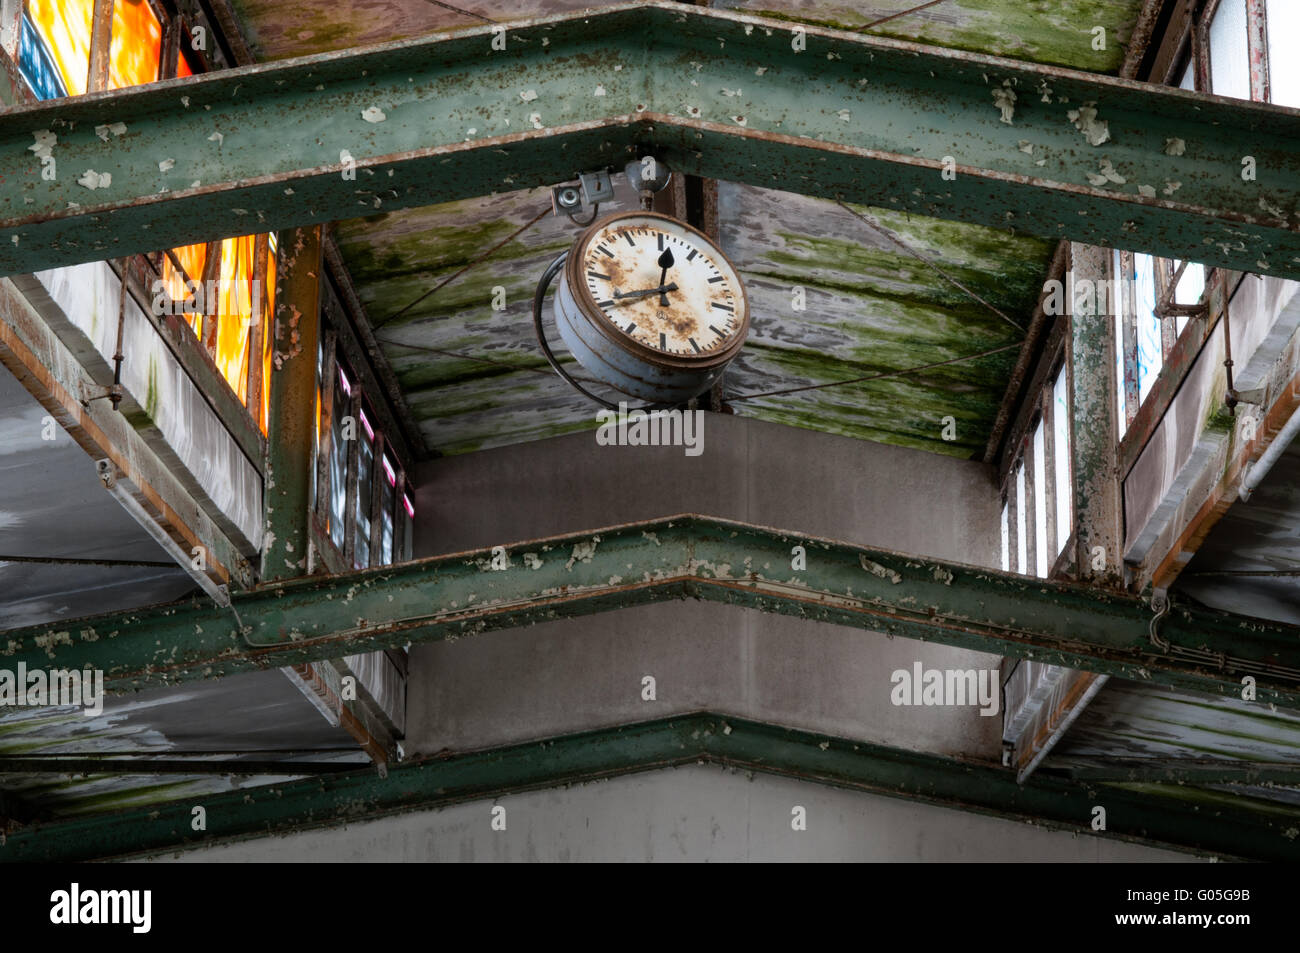 Clock in a dilapidated metal products factory - Stock Image